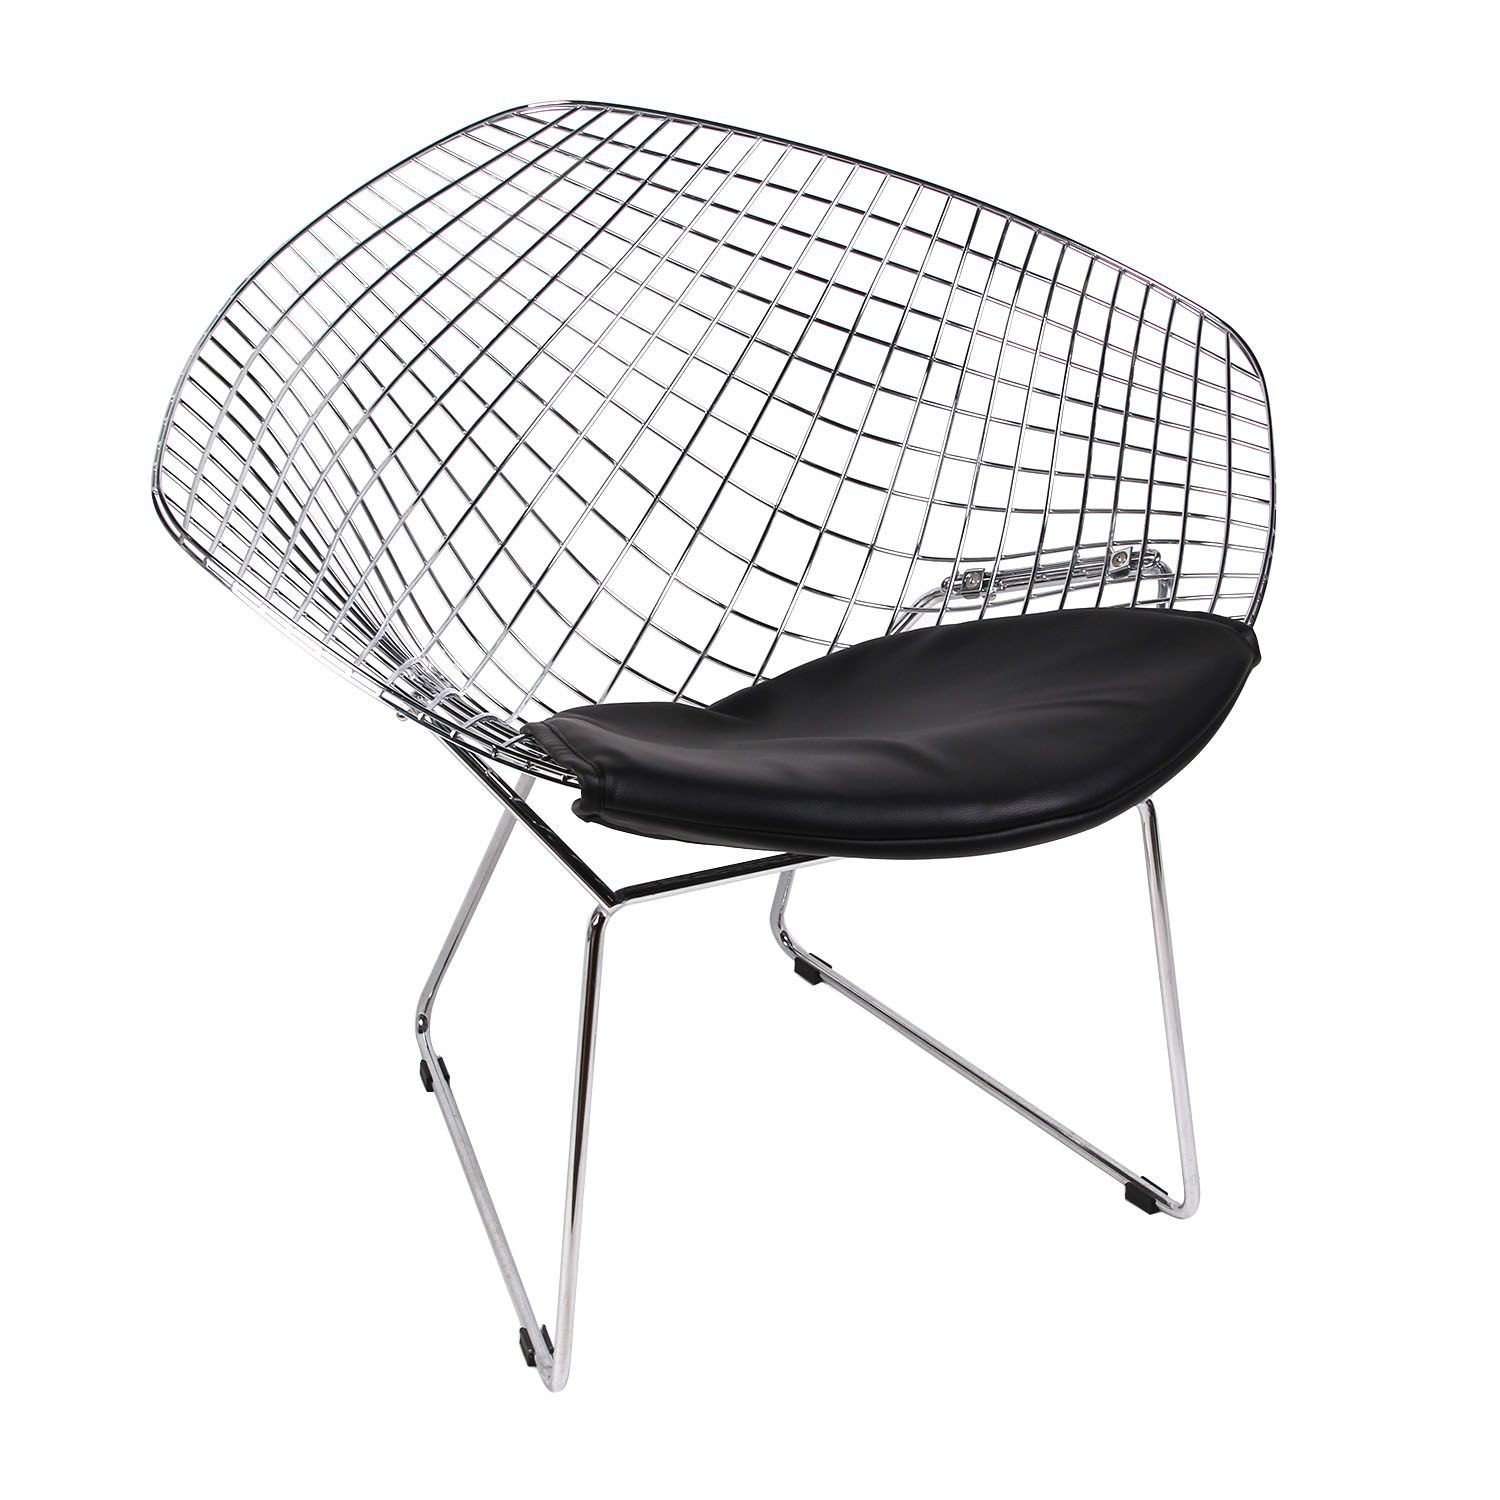 Silla Diamond, de Harry Bertoia